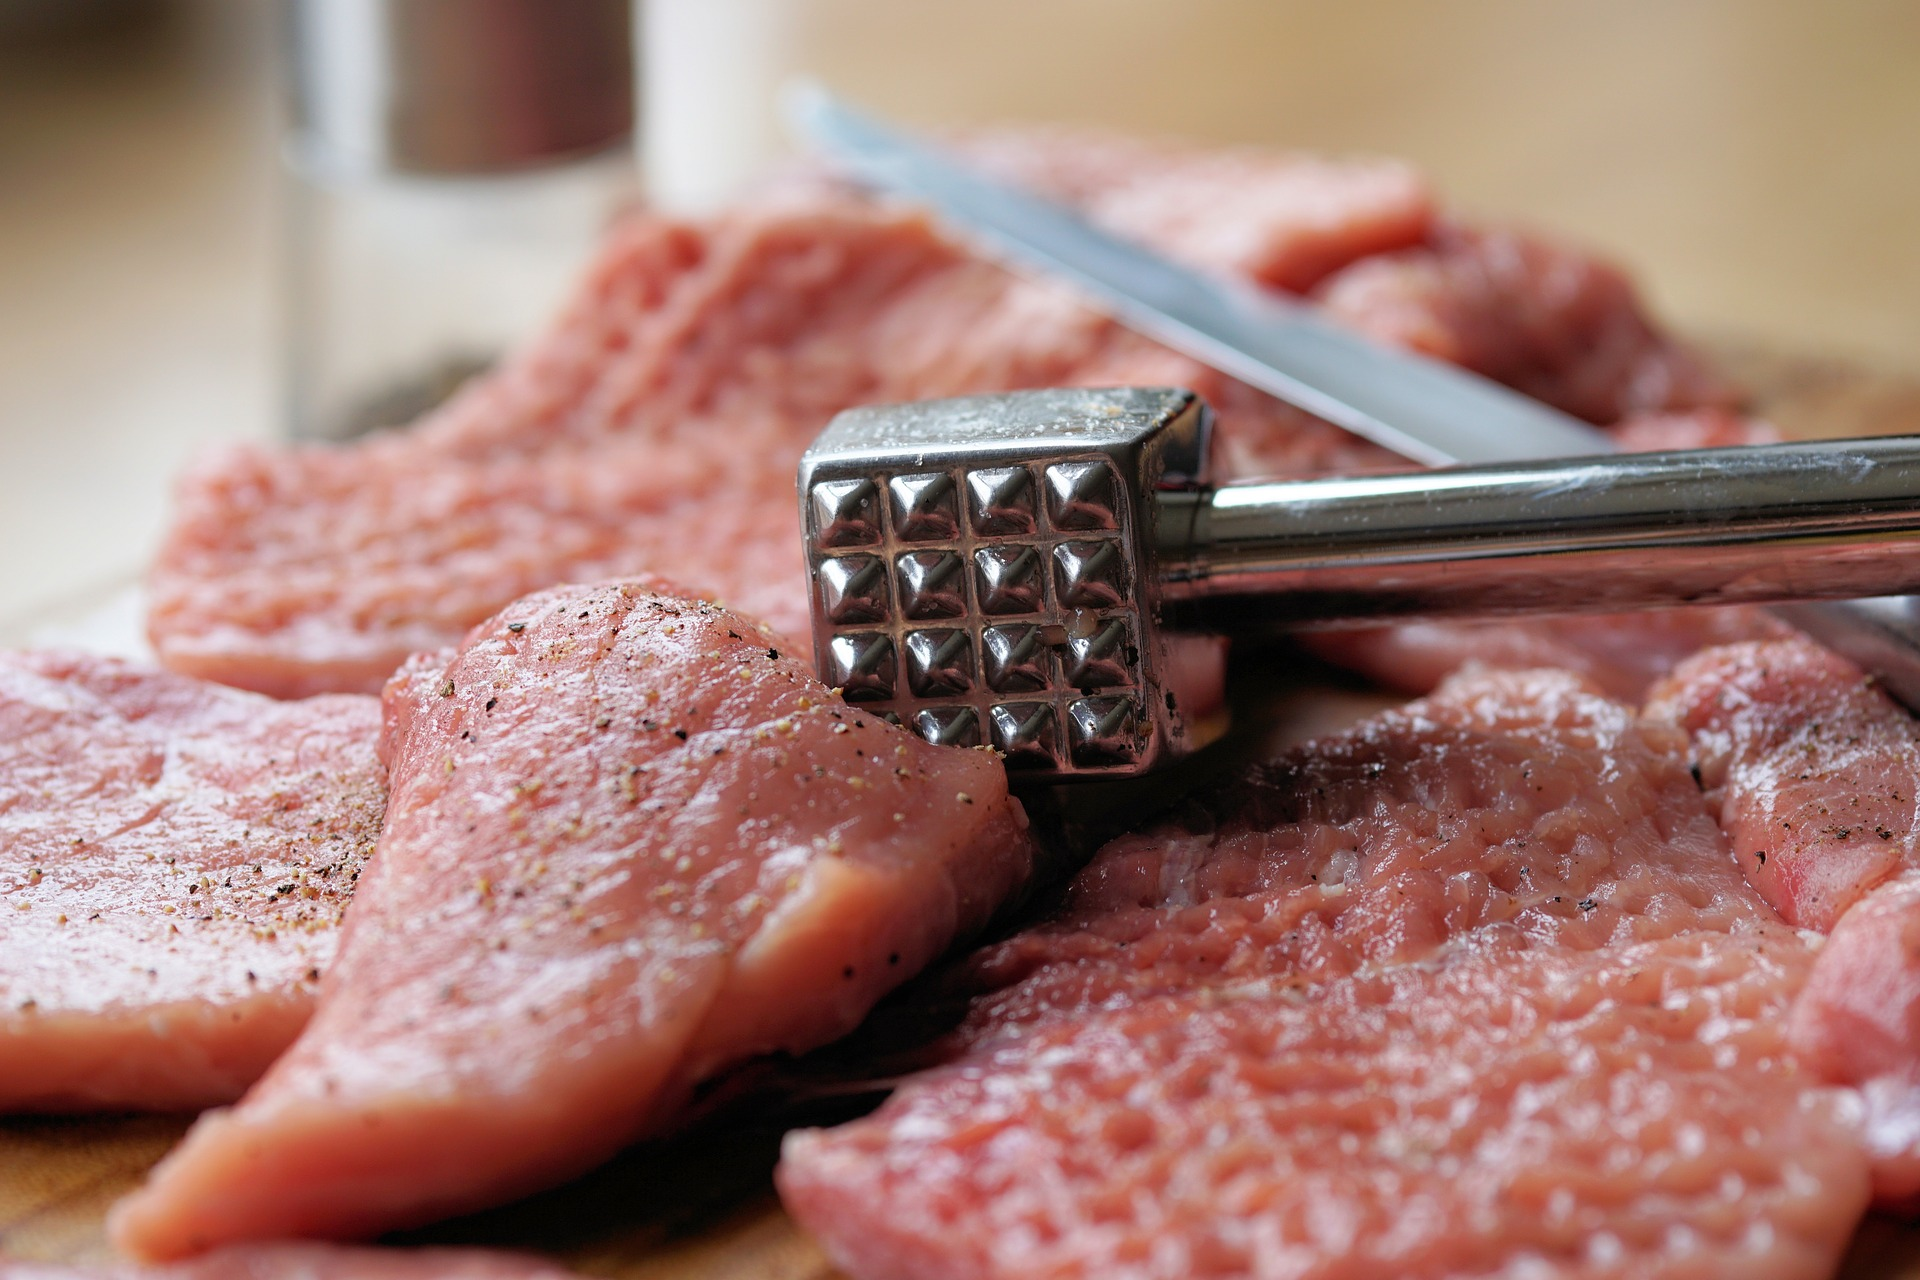 meat-hammer-2238538 1920 (2)